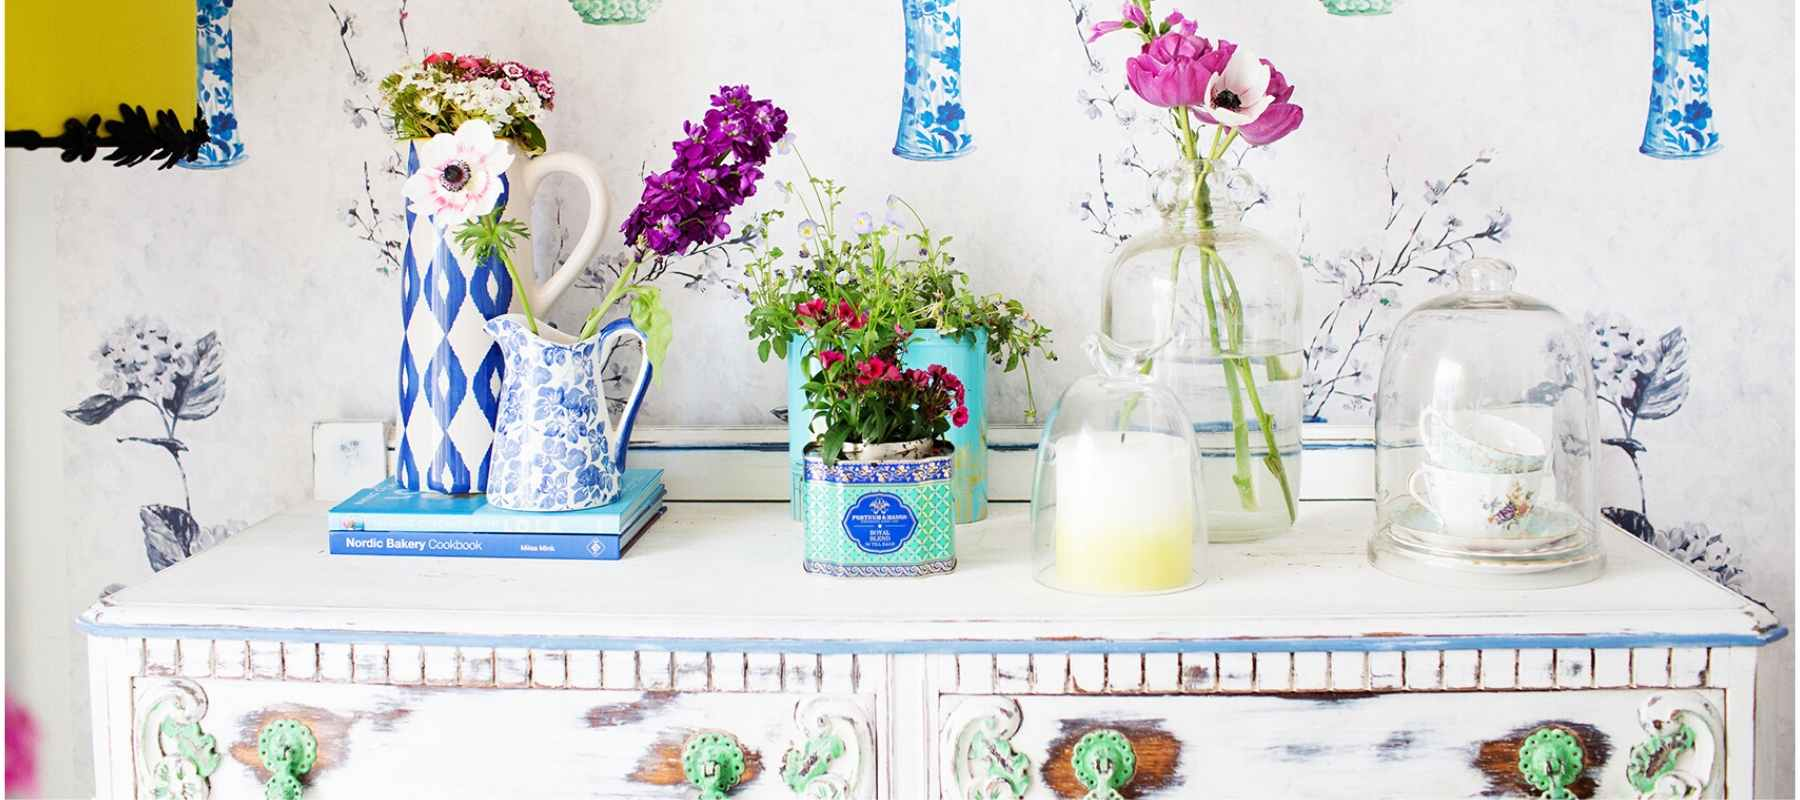 Colourful pots and vases with flowers on white dressing table